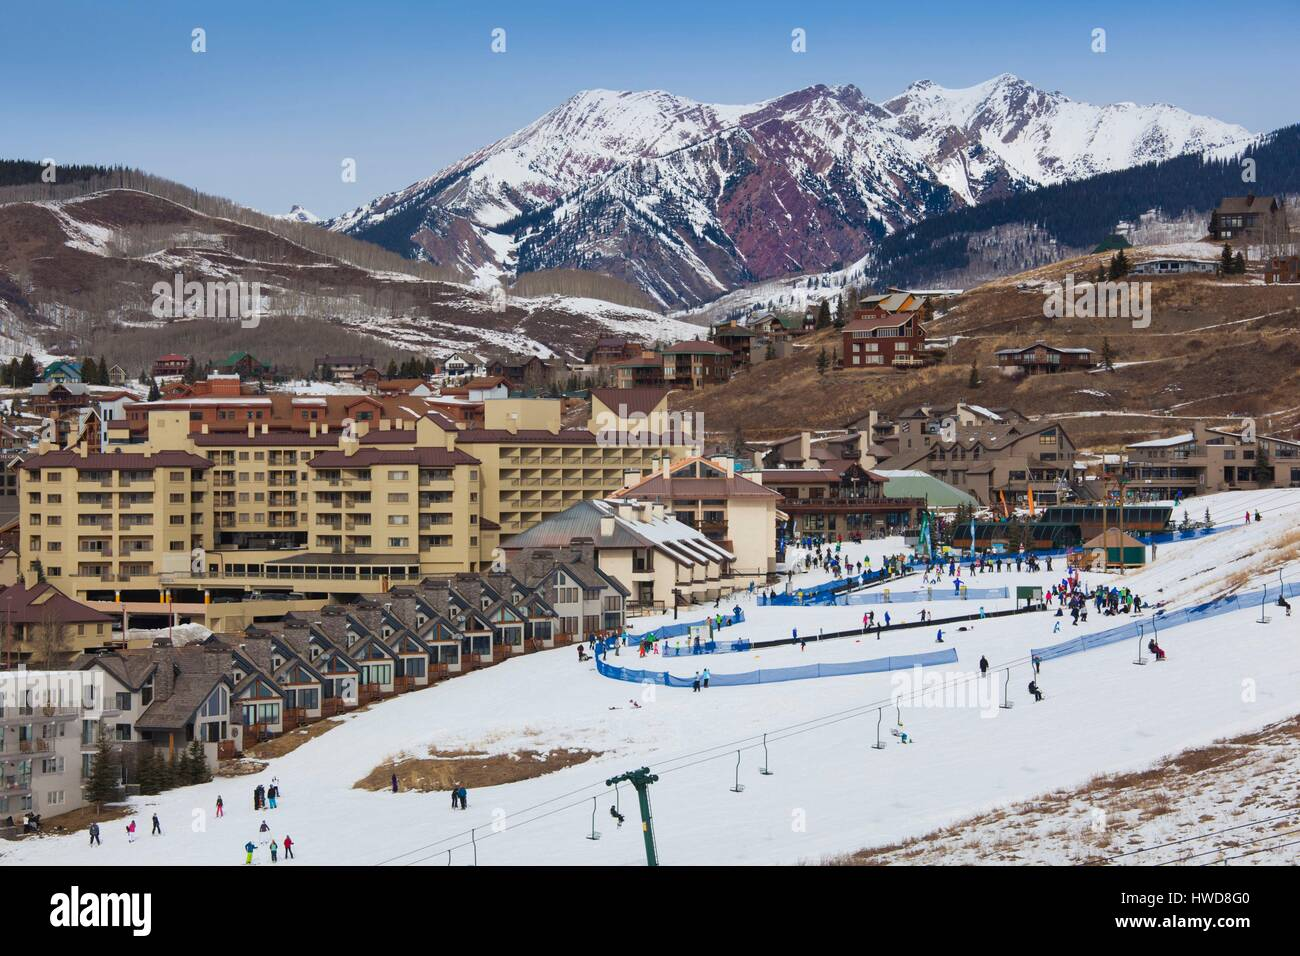 United States, Colorado, Crested Butte, Mount Crested Butte Ski Village, elevated view Stock Photo